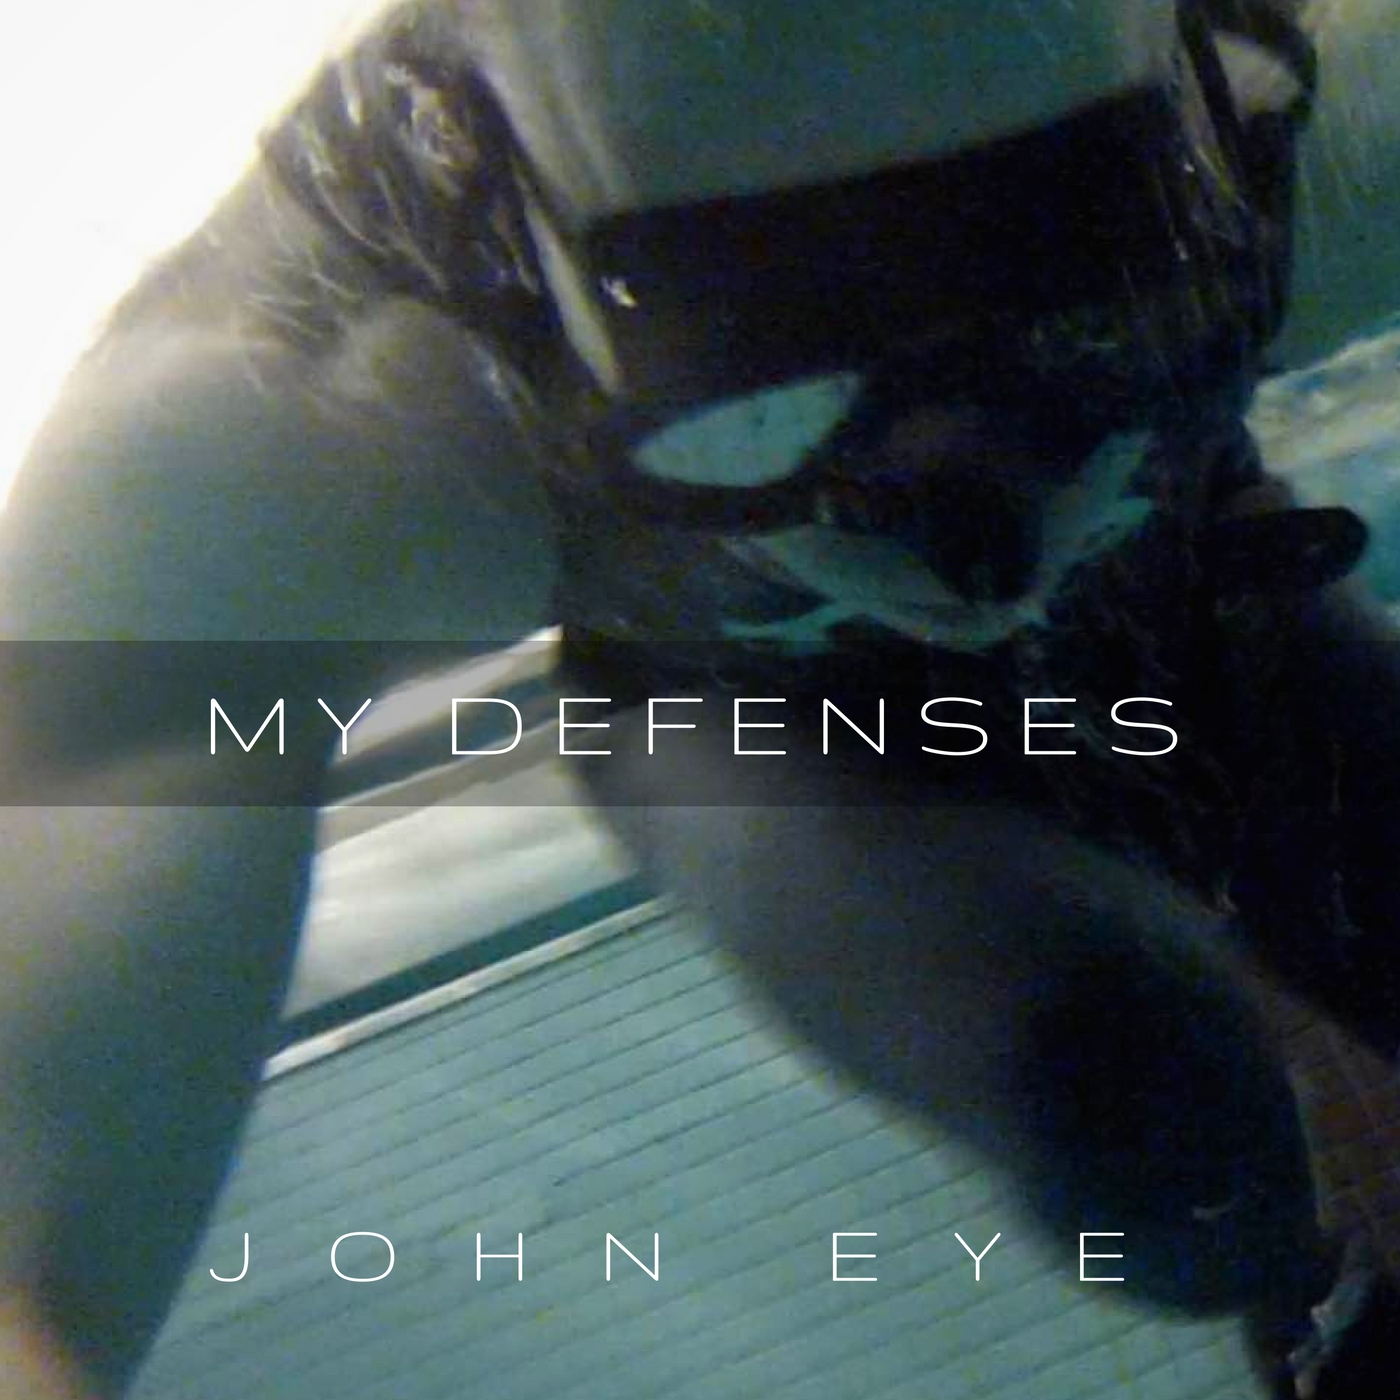 Cover art for John Eye My Defenses single